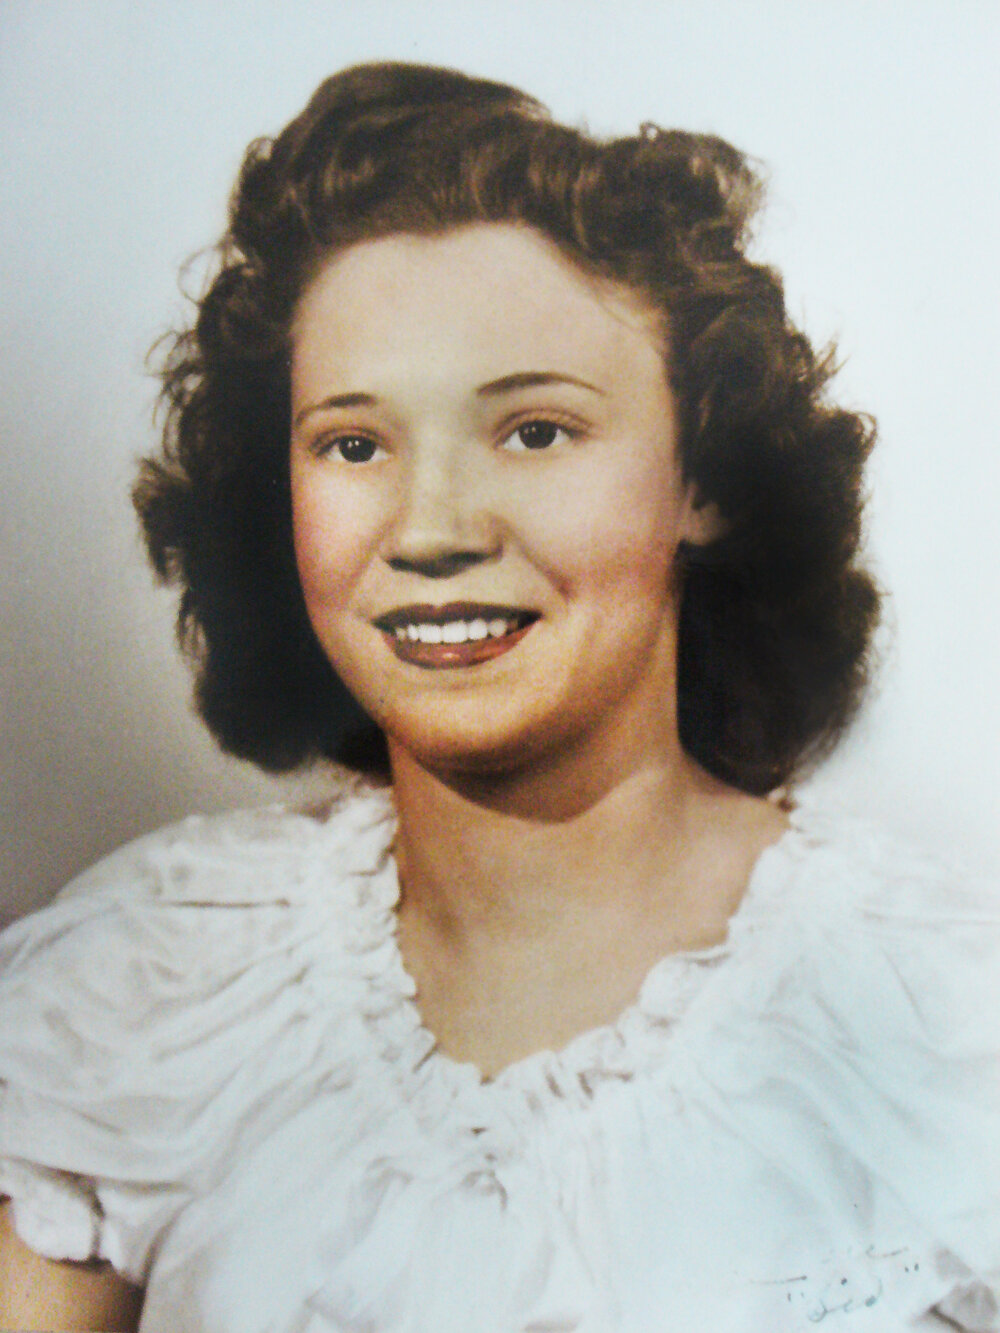 Mamaw, Lauren's great-grandmother, when she was young. She was born and raised in rural Tennessee, loved plants, and had many of them.